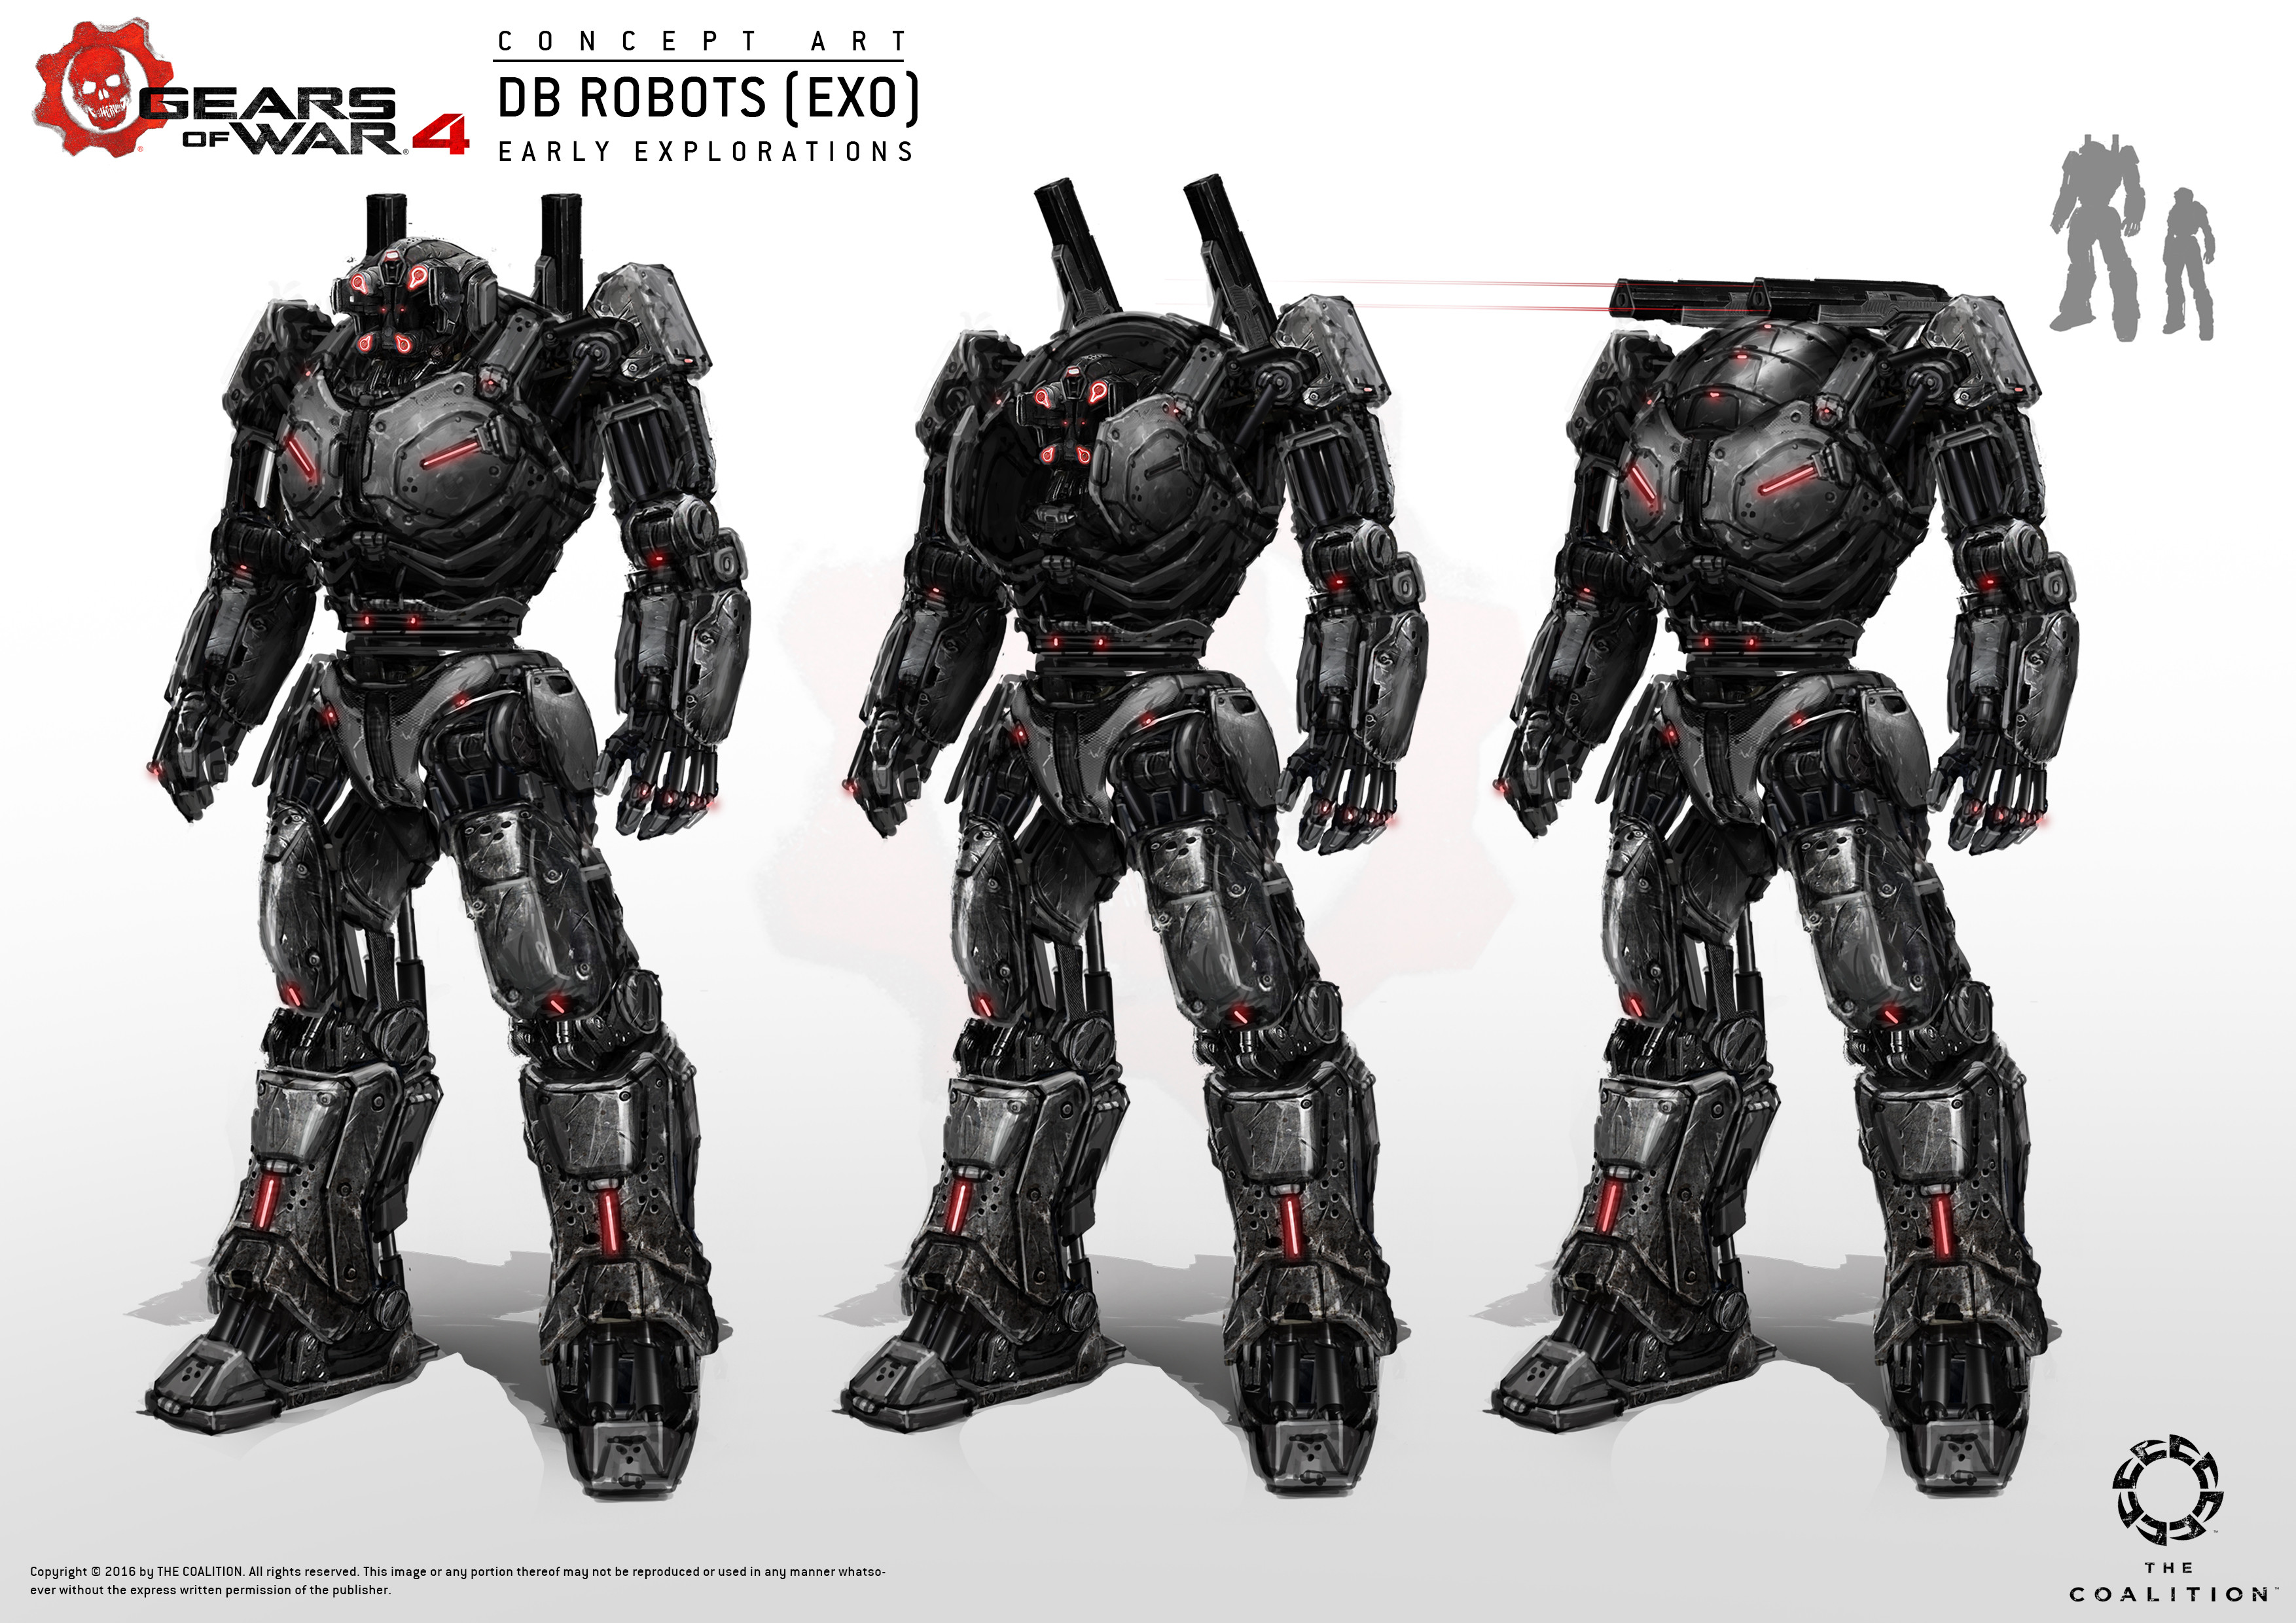 Early explorations of the exo suit